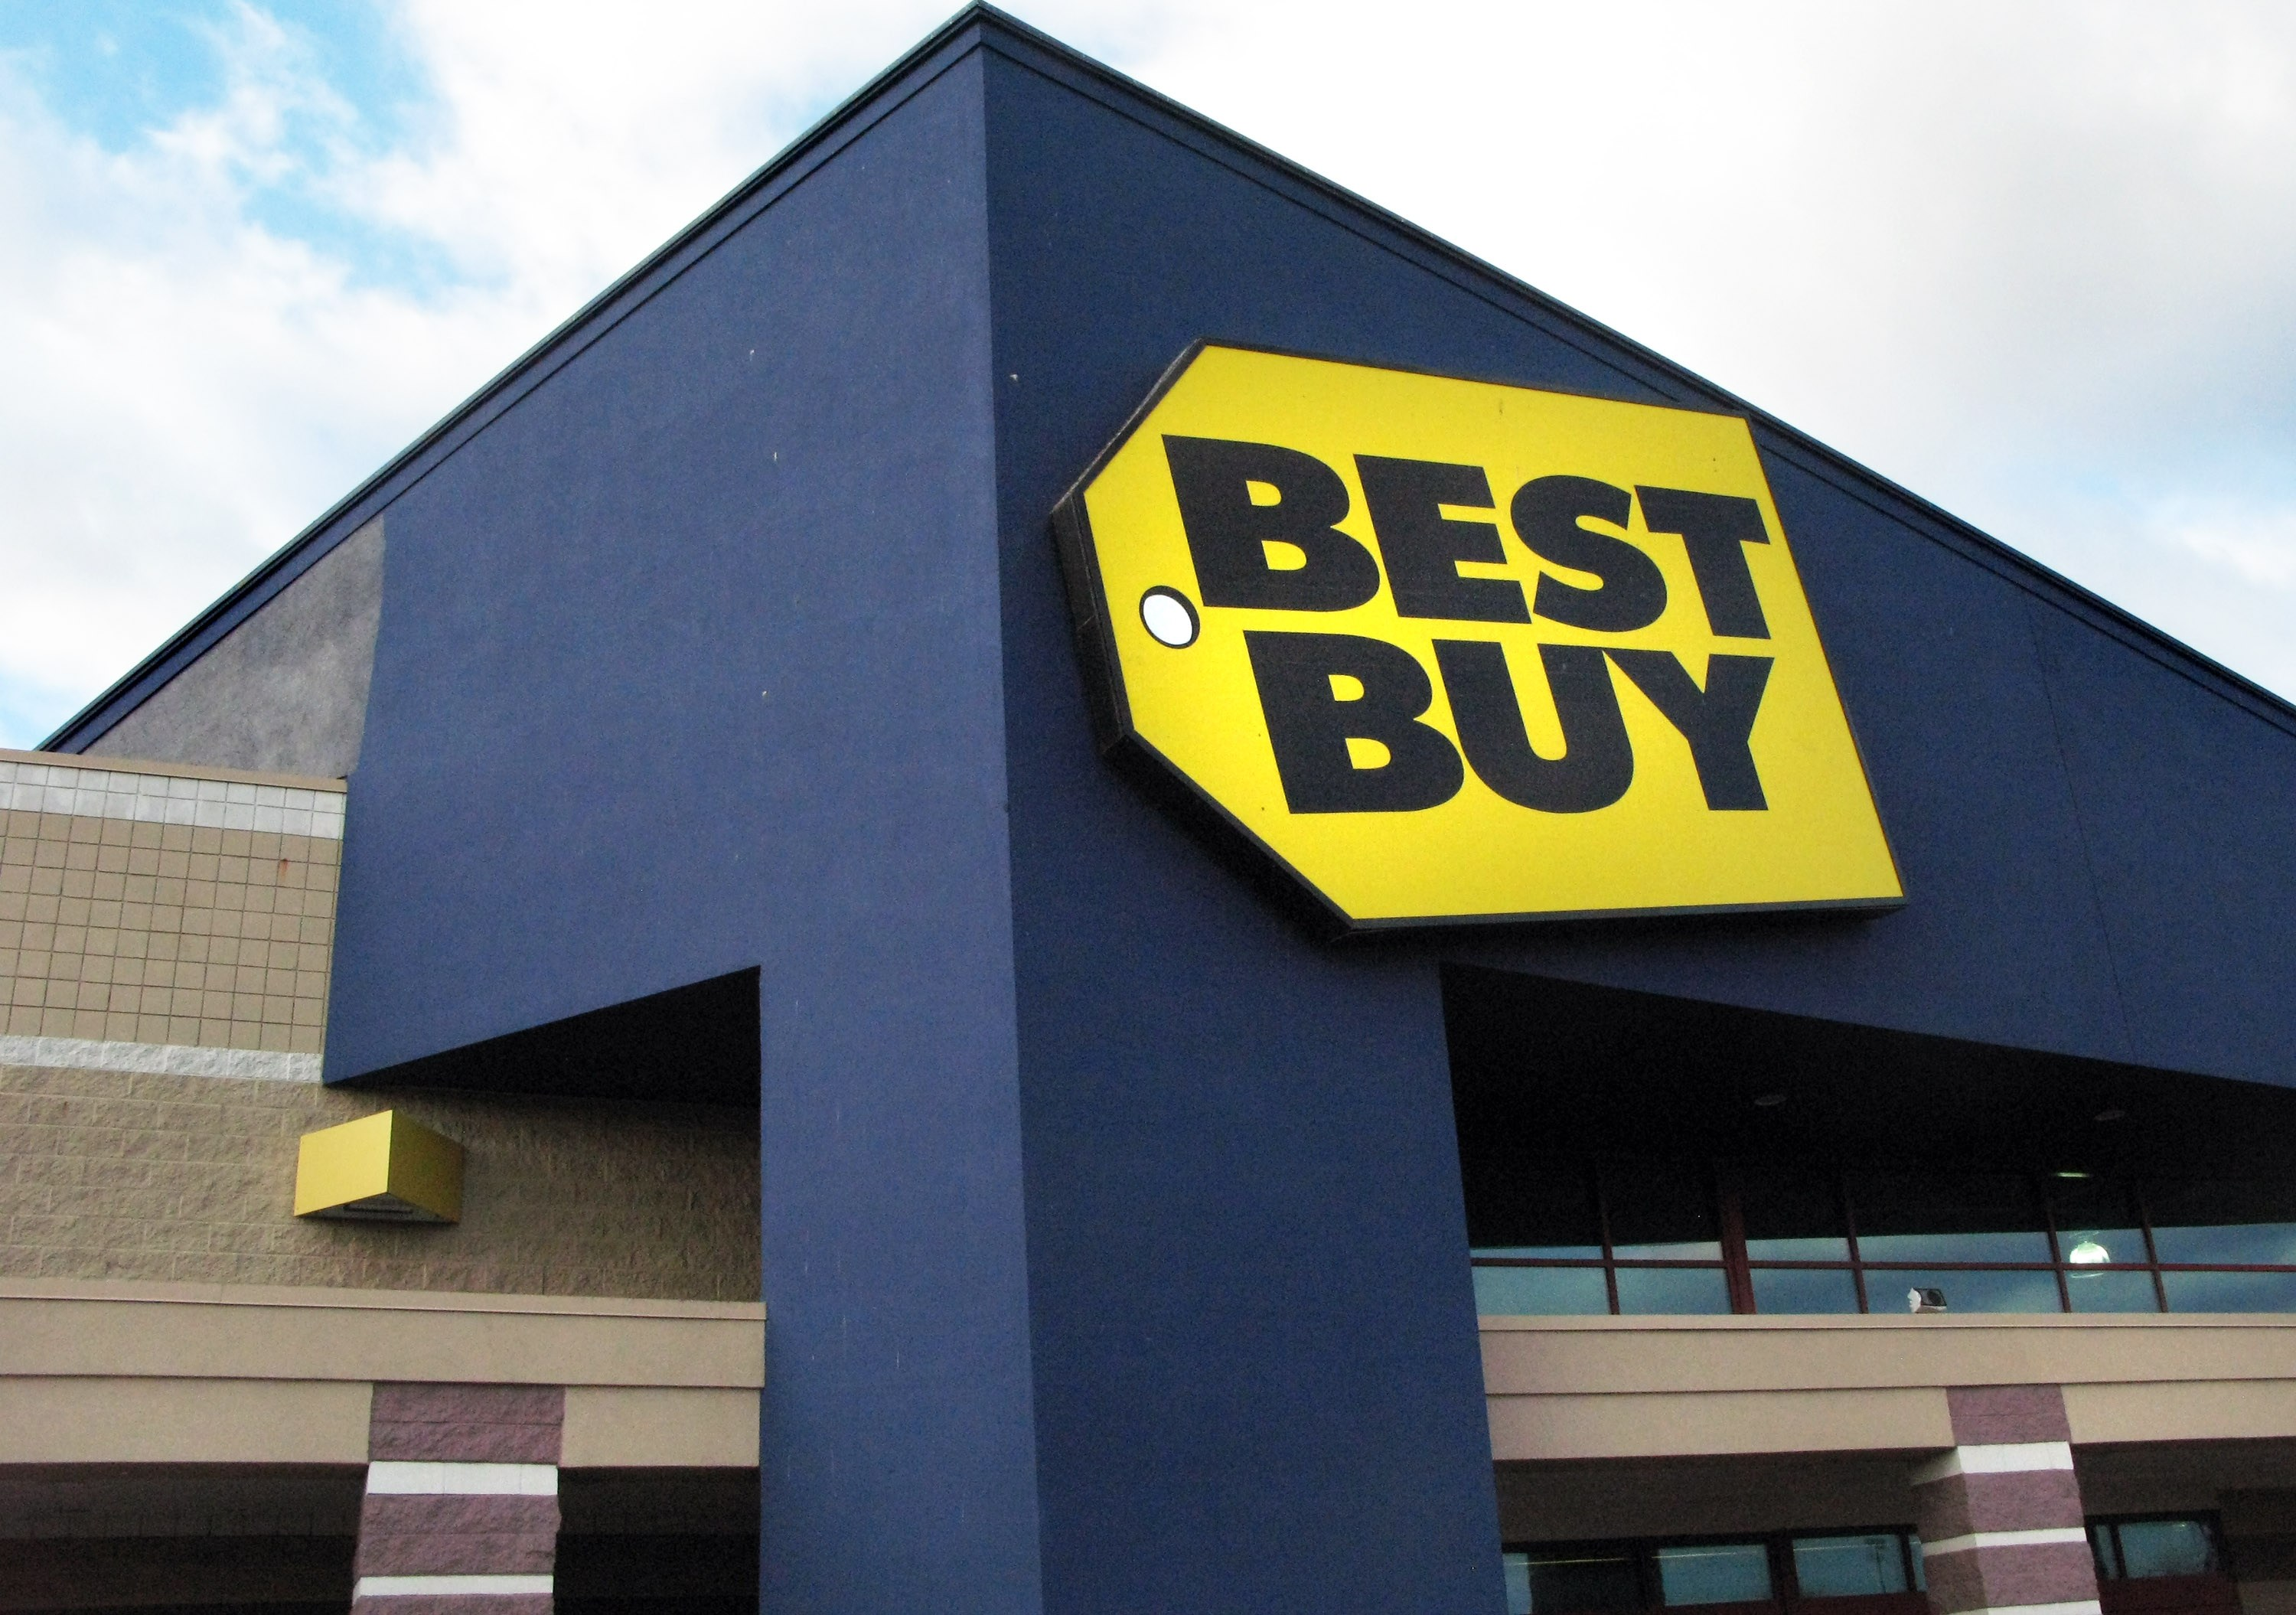 BEST AND BUY